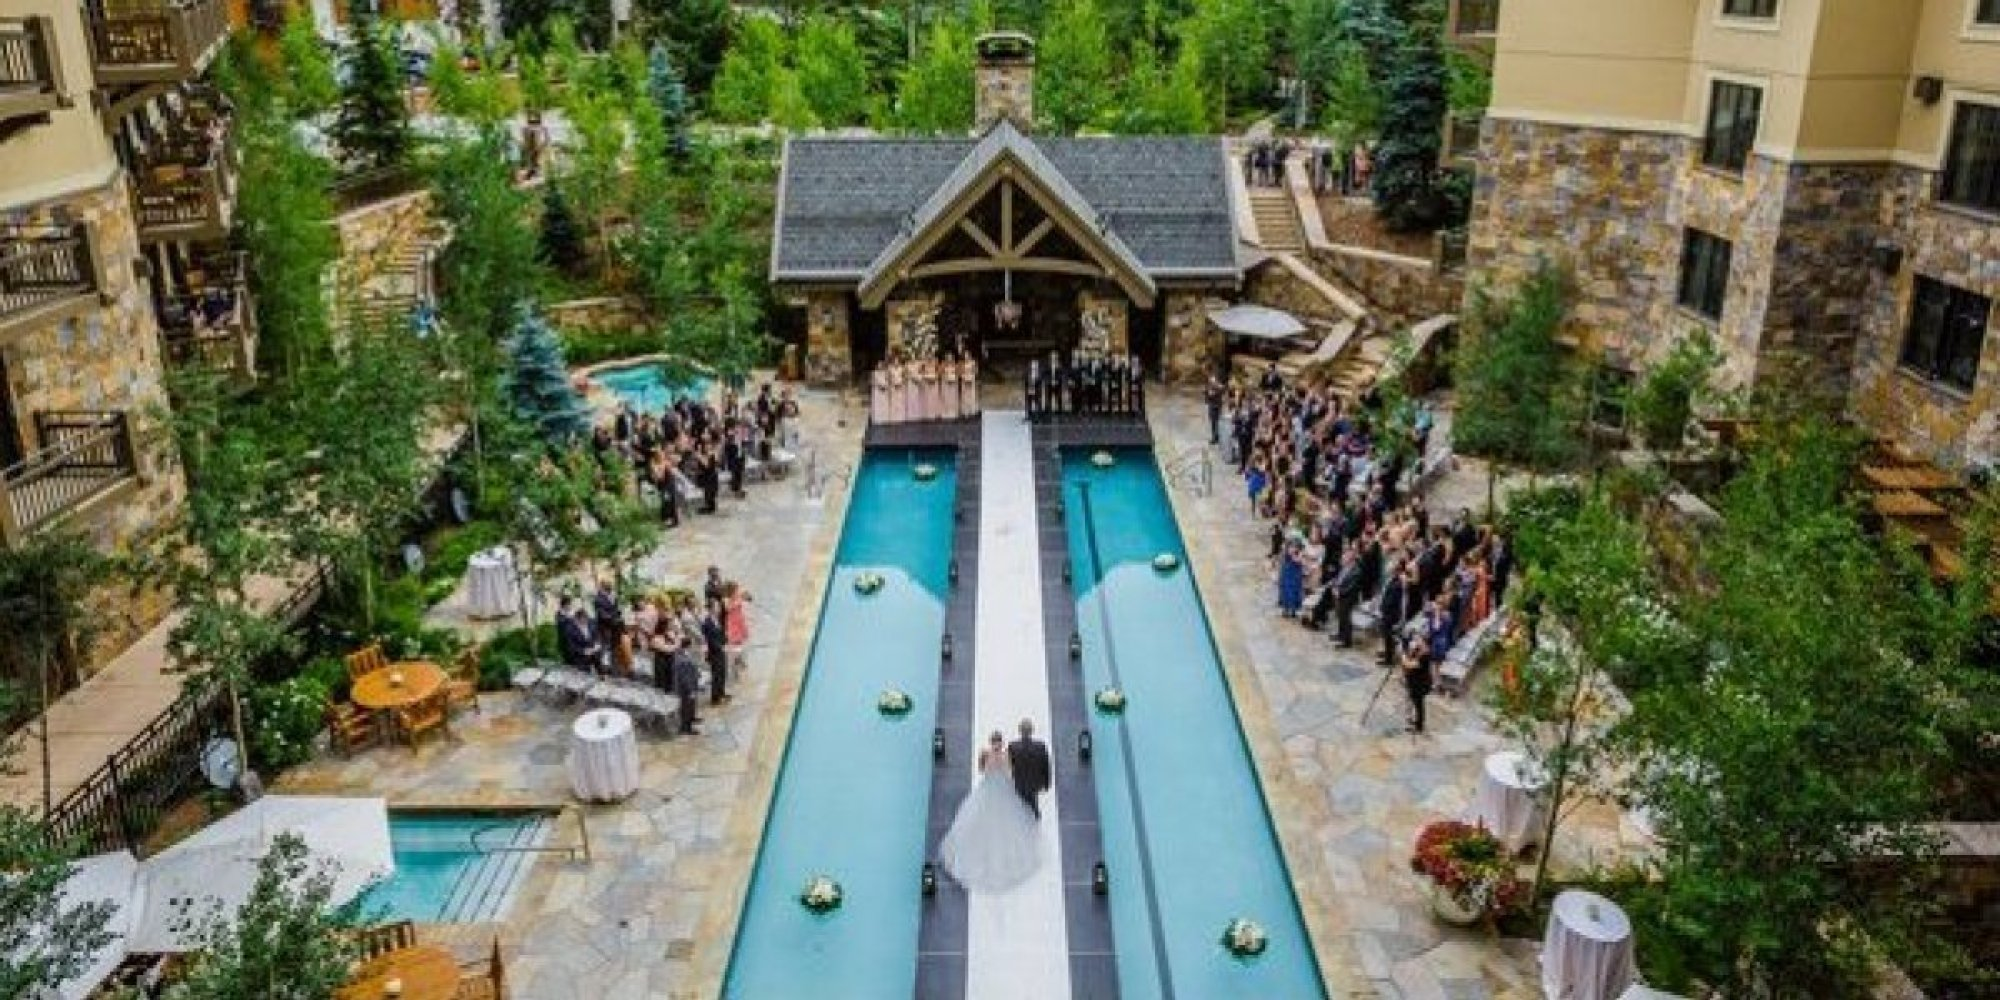 50 wedding ideas you havent already seen all over pinterest huffpost junglespirit Gallery